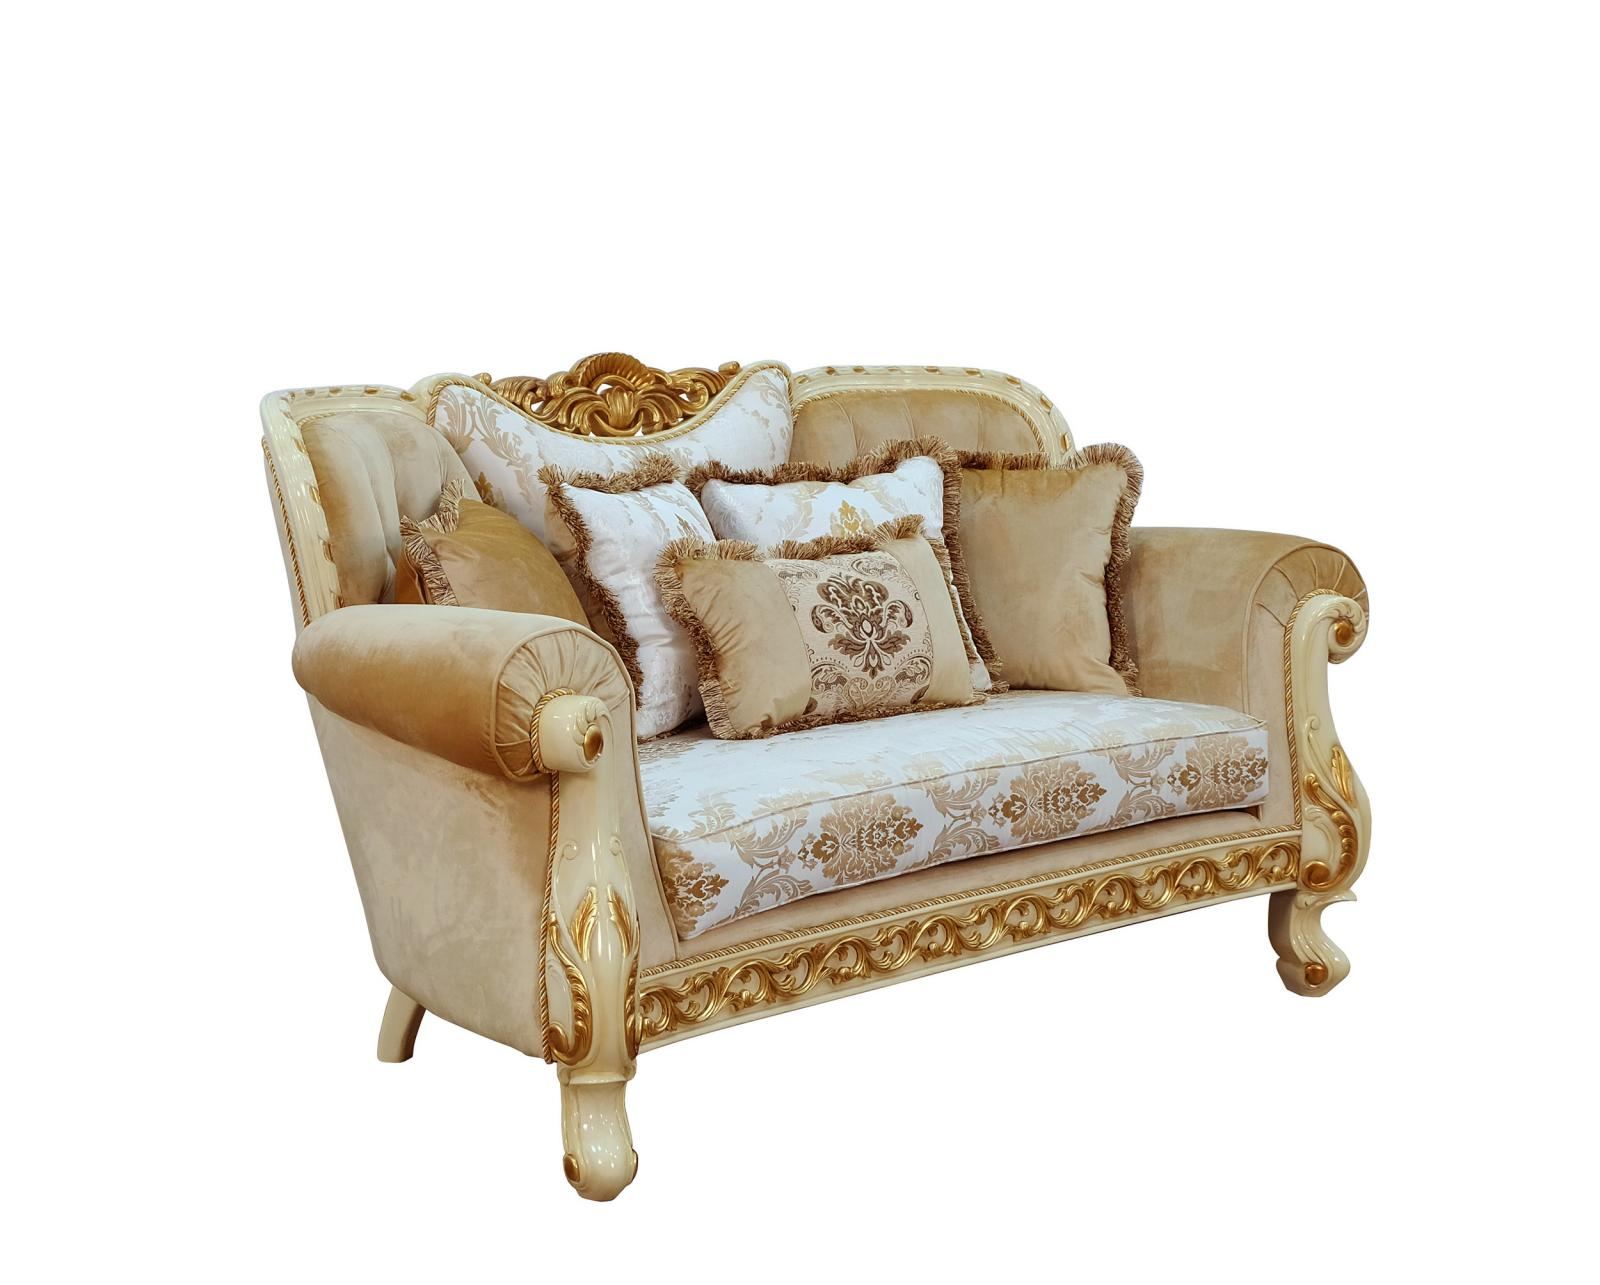 Classic  Traditional Gold  Sand  Off-White Wood  Solid Hardwood and Fabric Loveseat EUROPEAN FURNITURE 40015-L